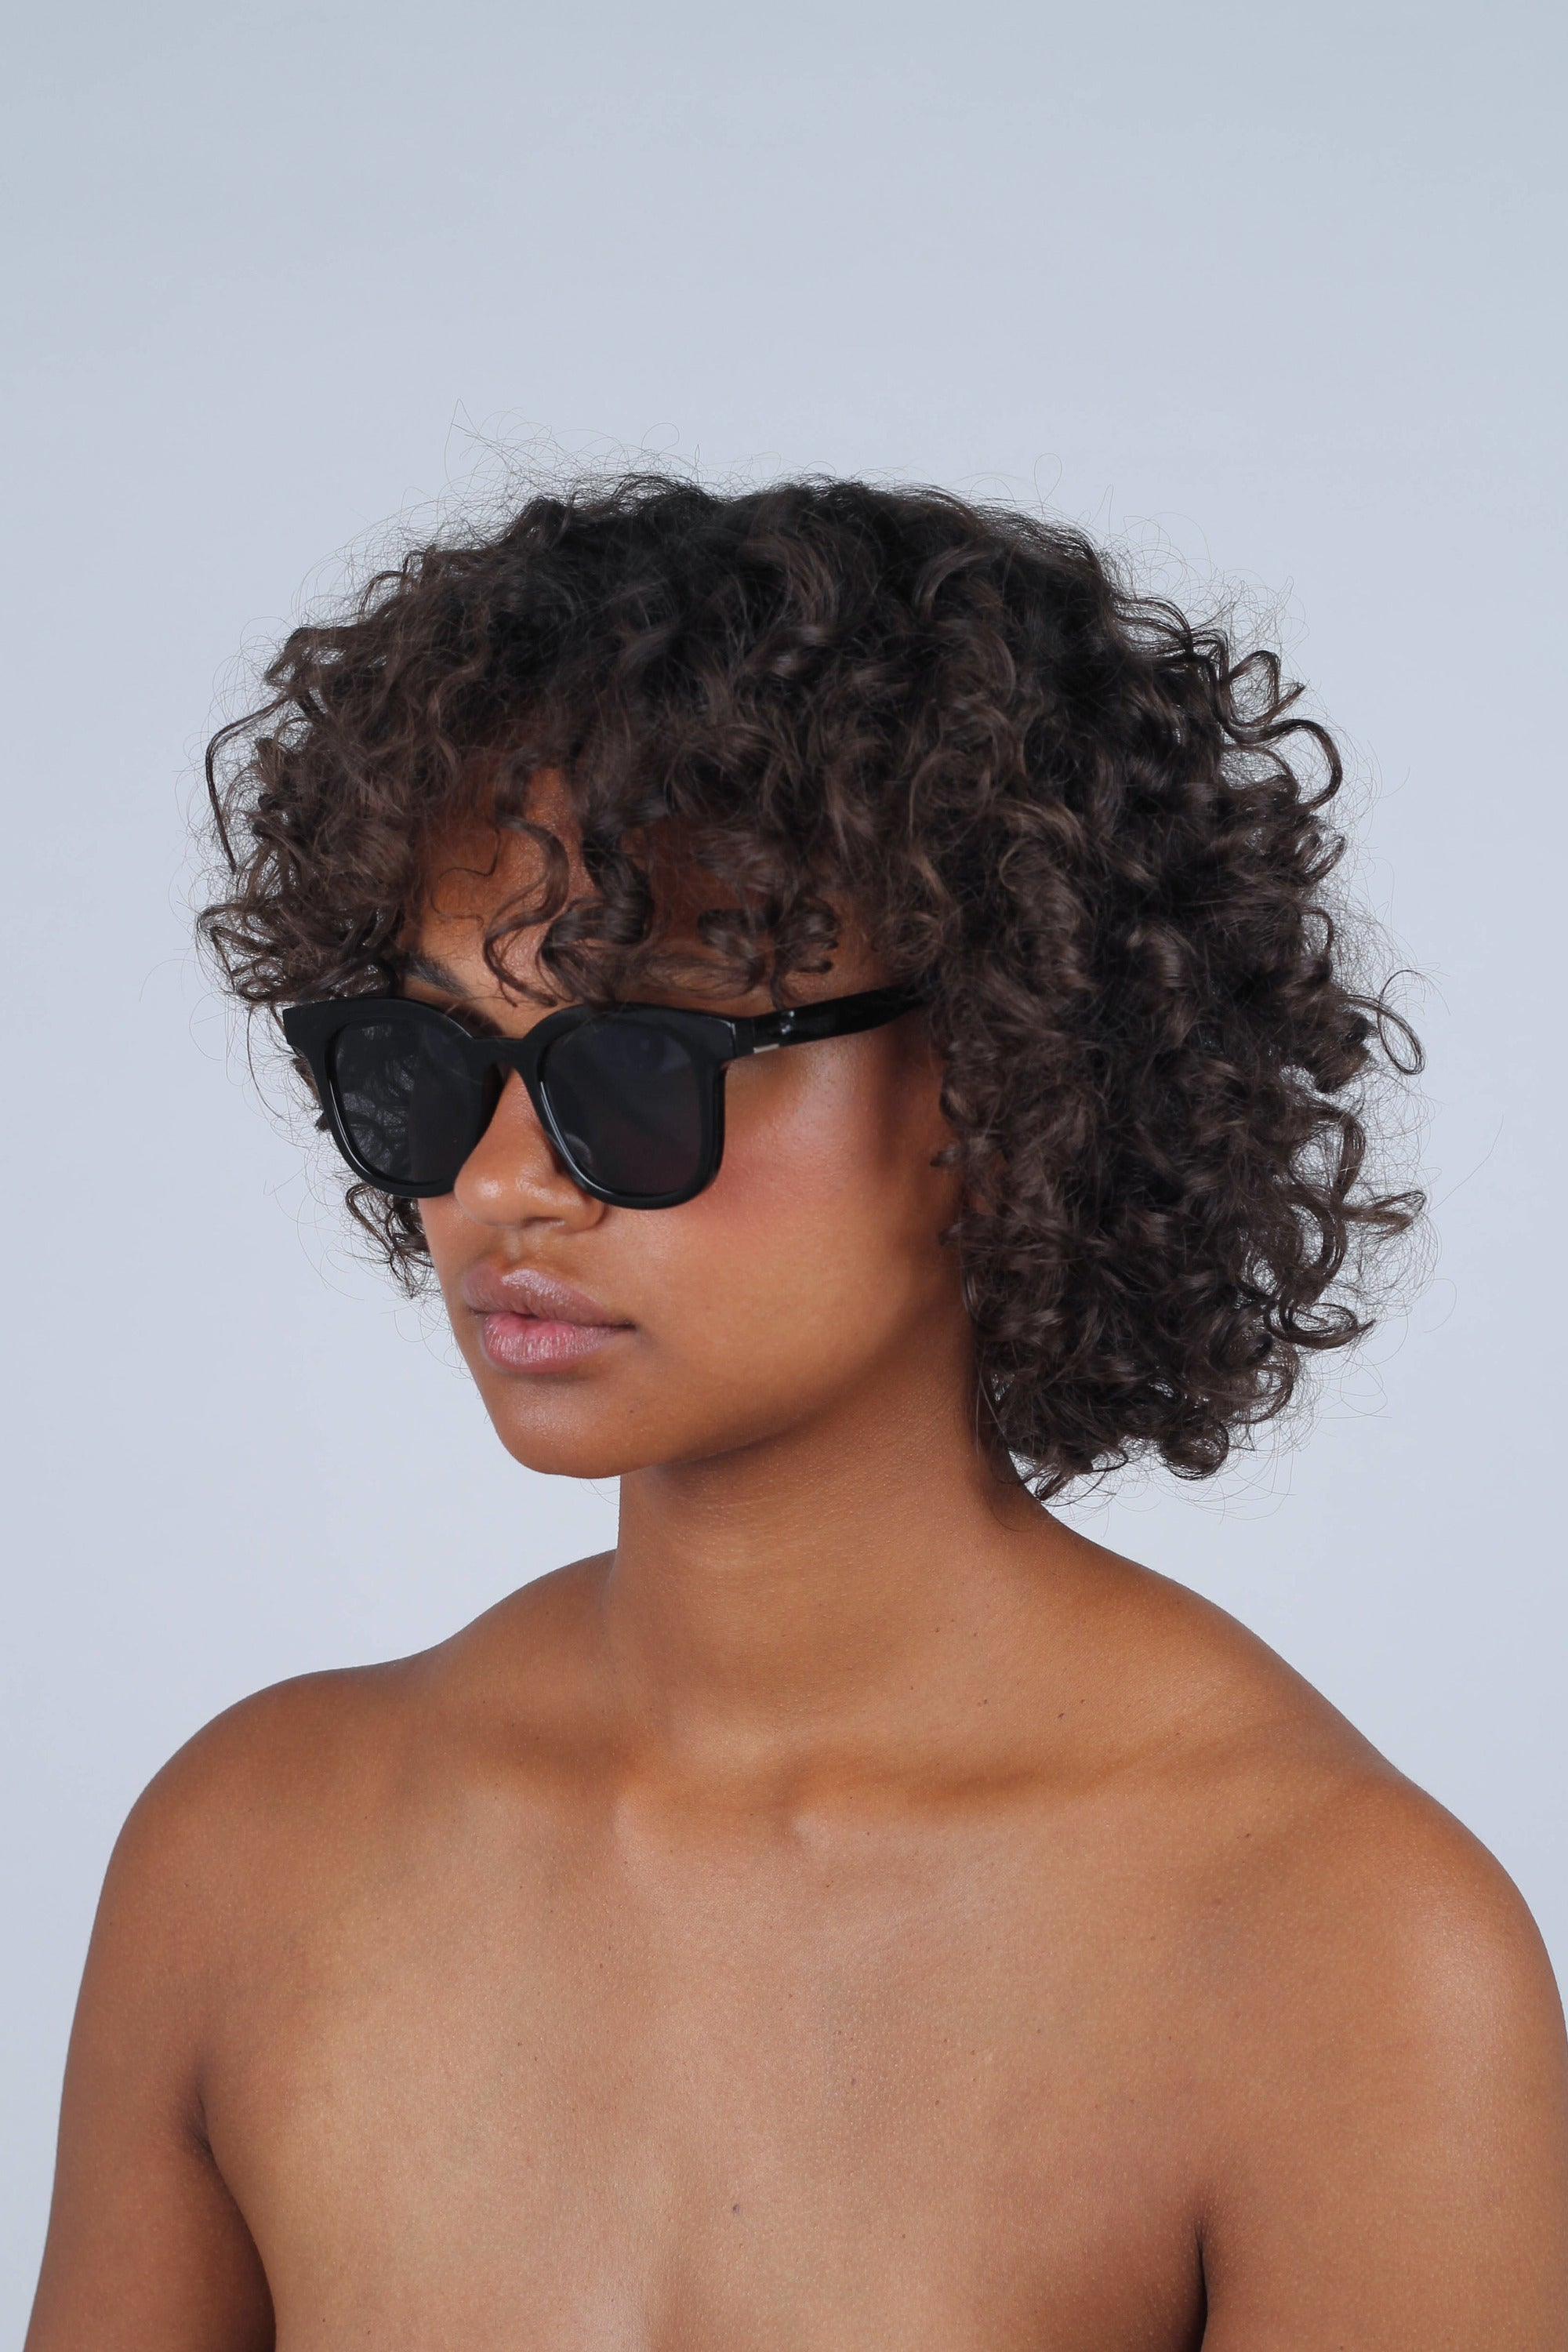 All black thick square frame sunglasses_MCSBA1